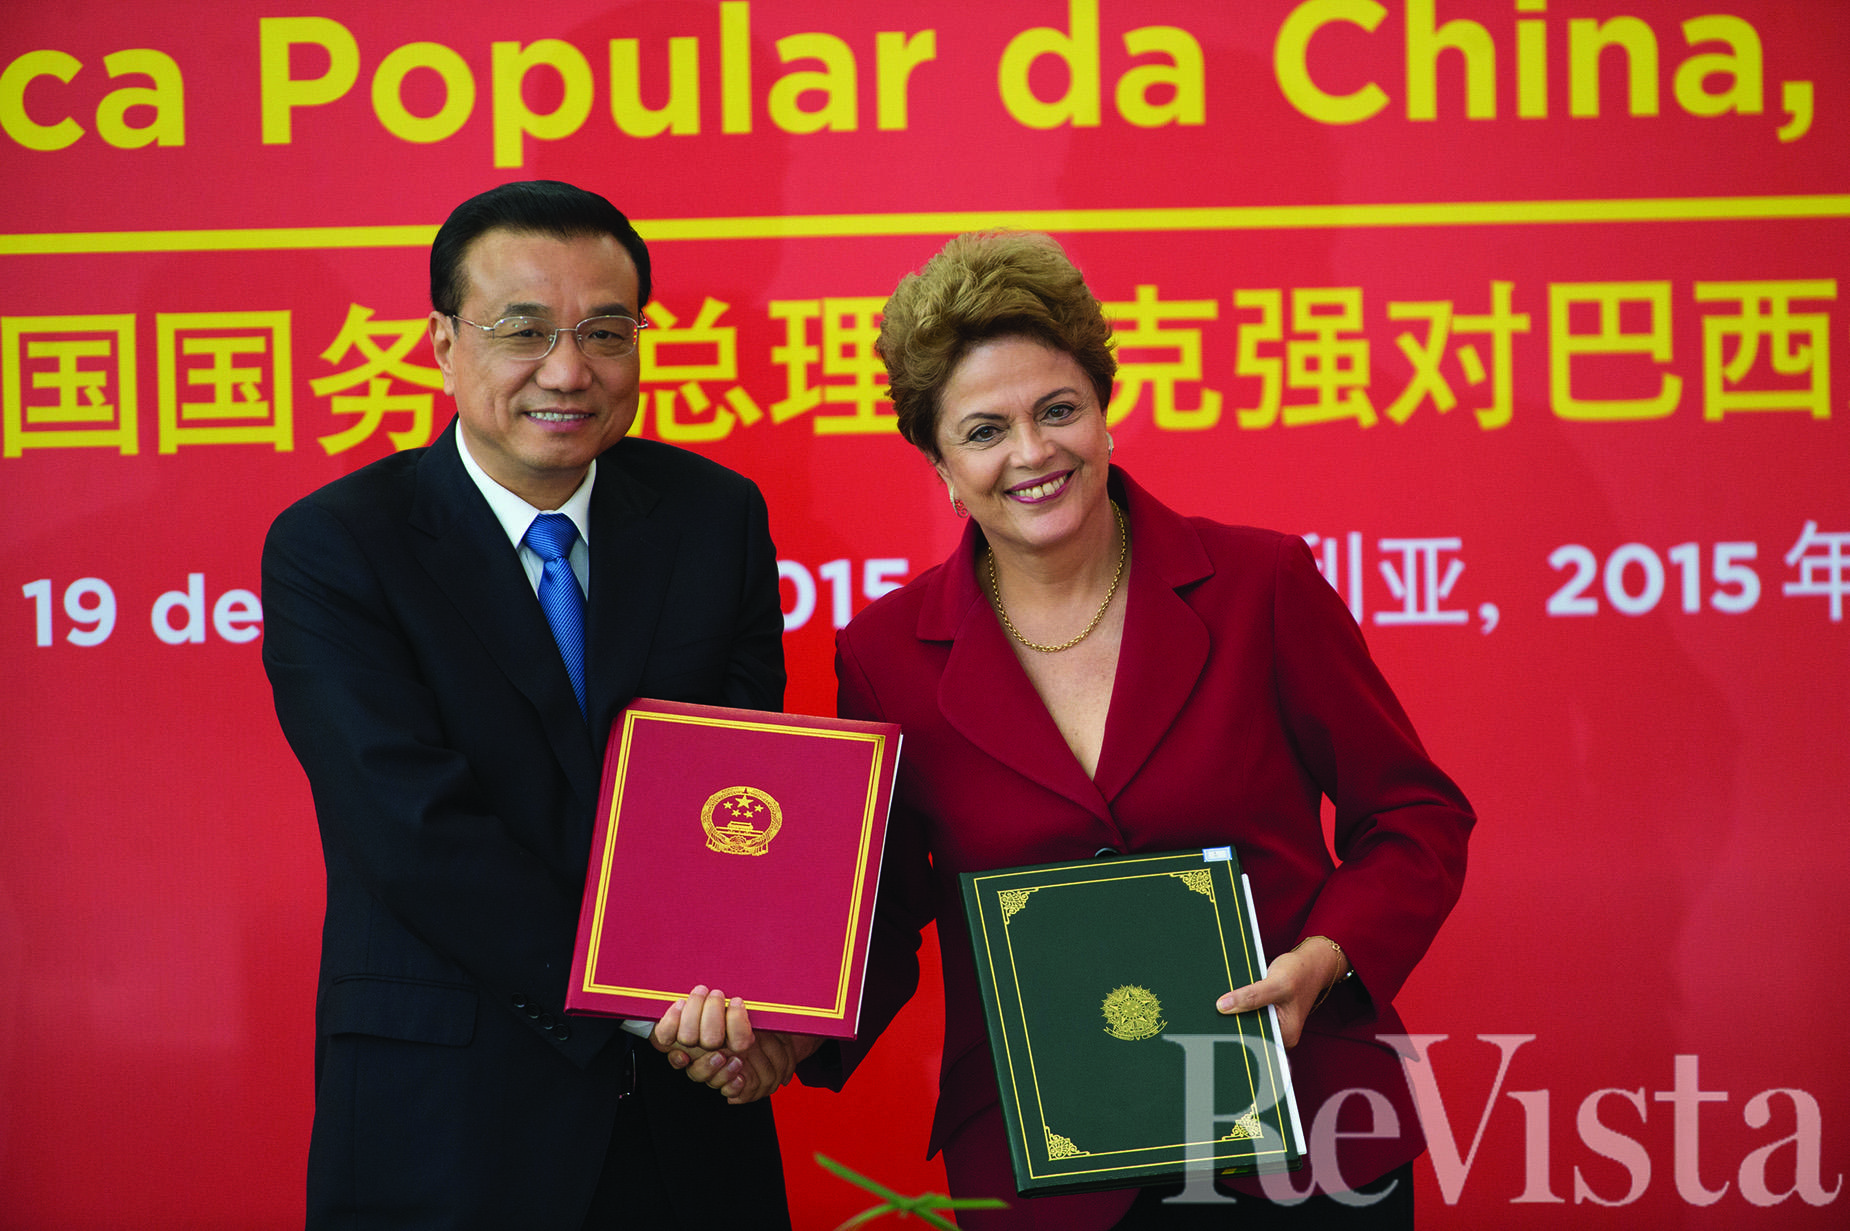 Rousseff and Keqiang